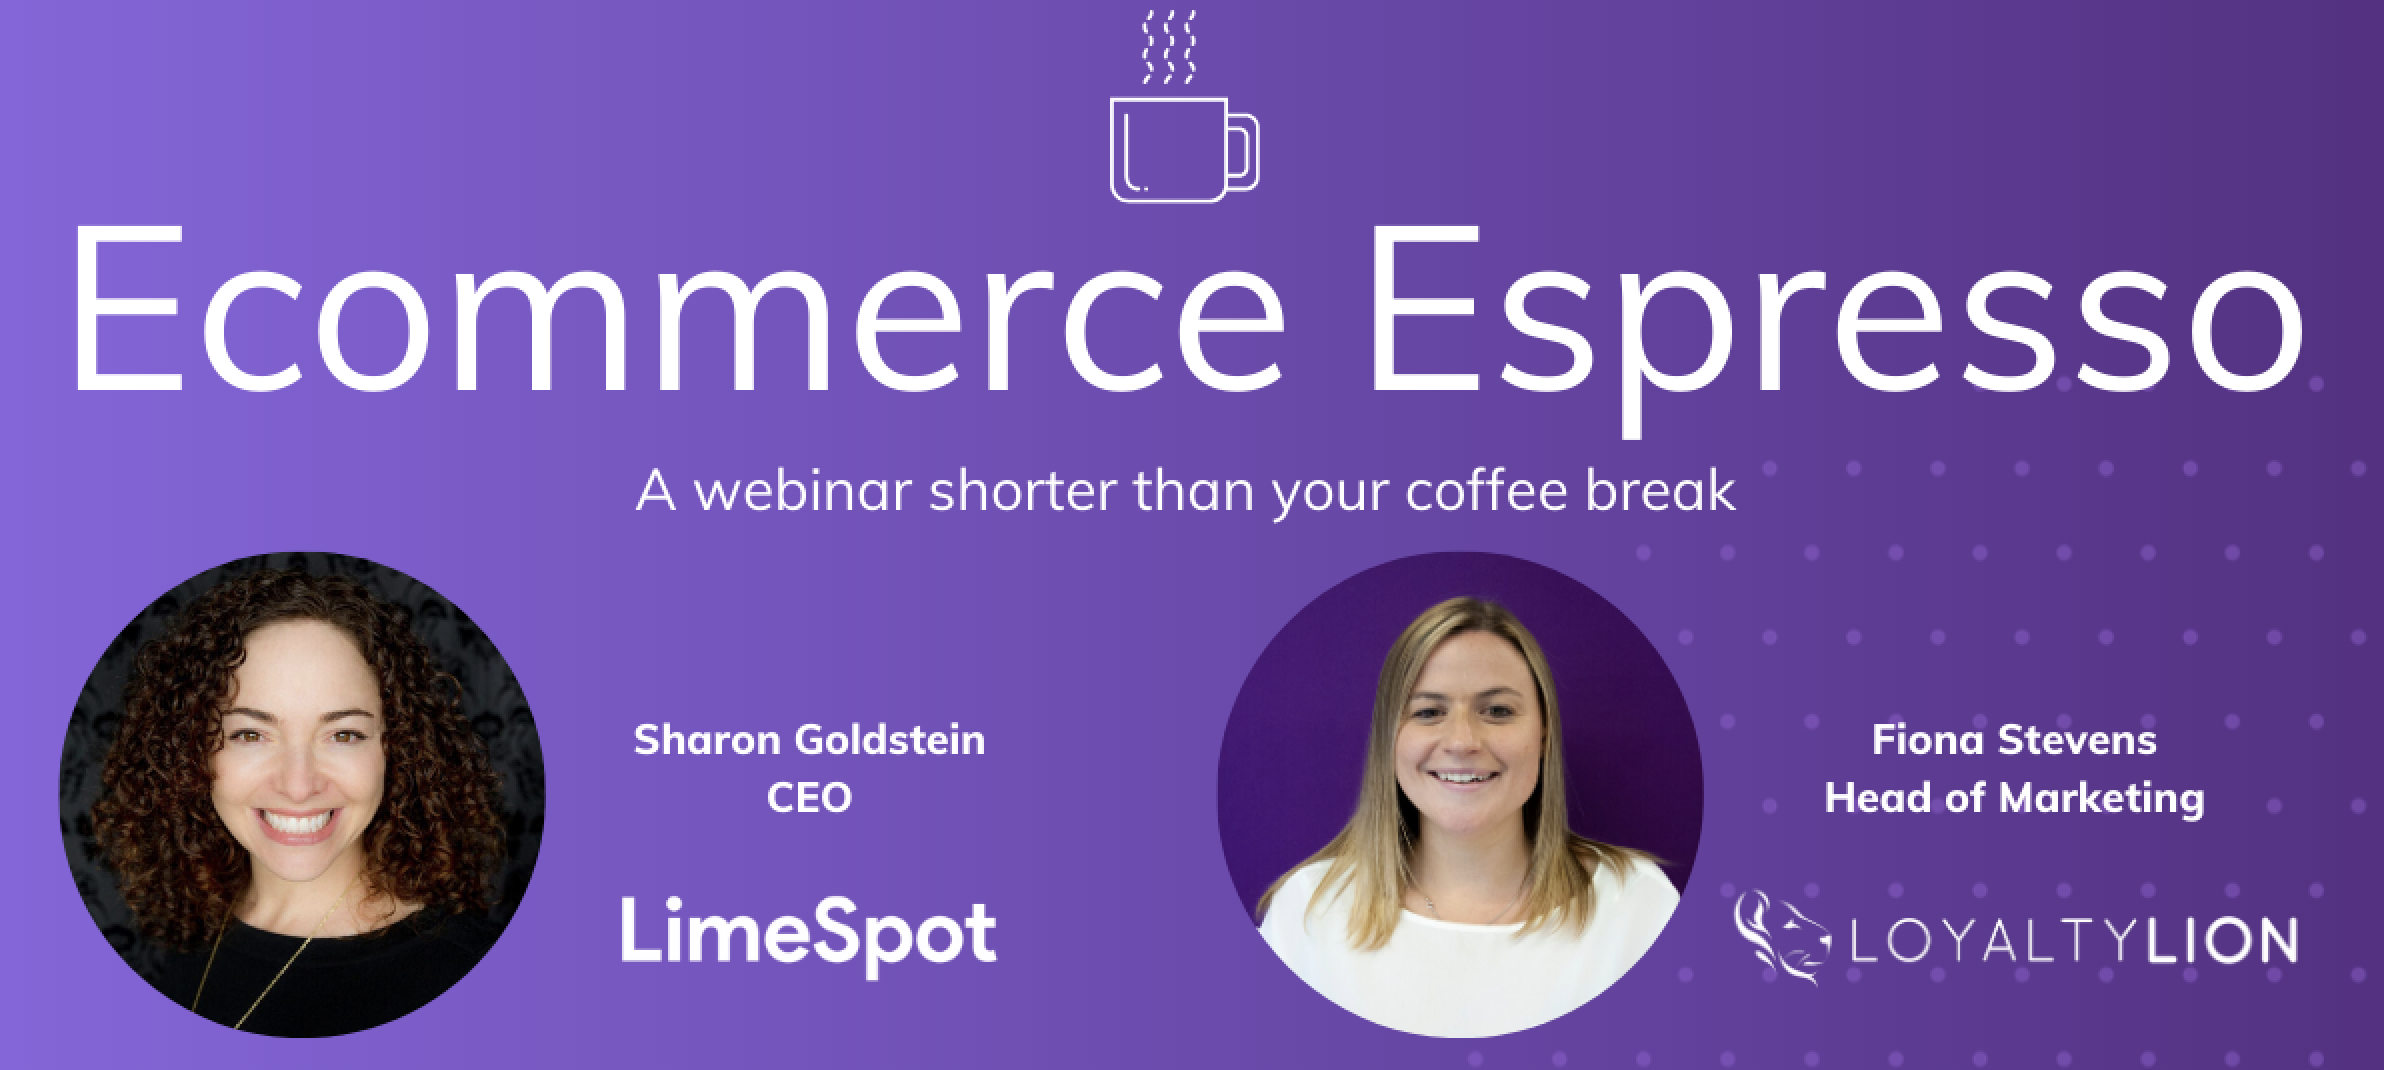 LimeSpot and LoyaltyLion eCommerce Espresso